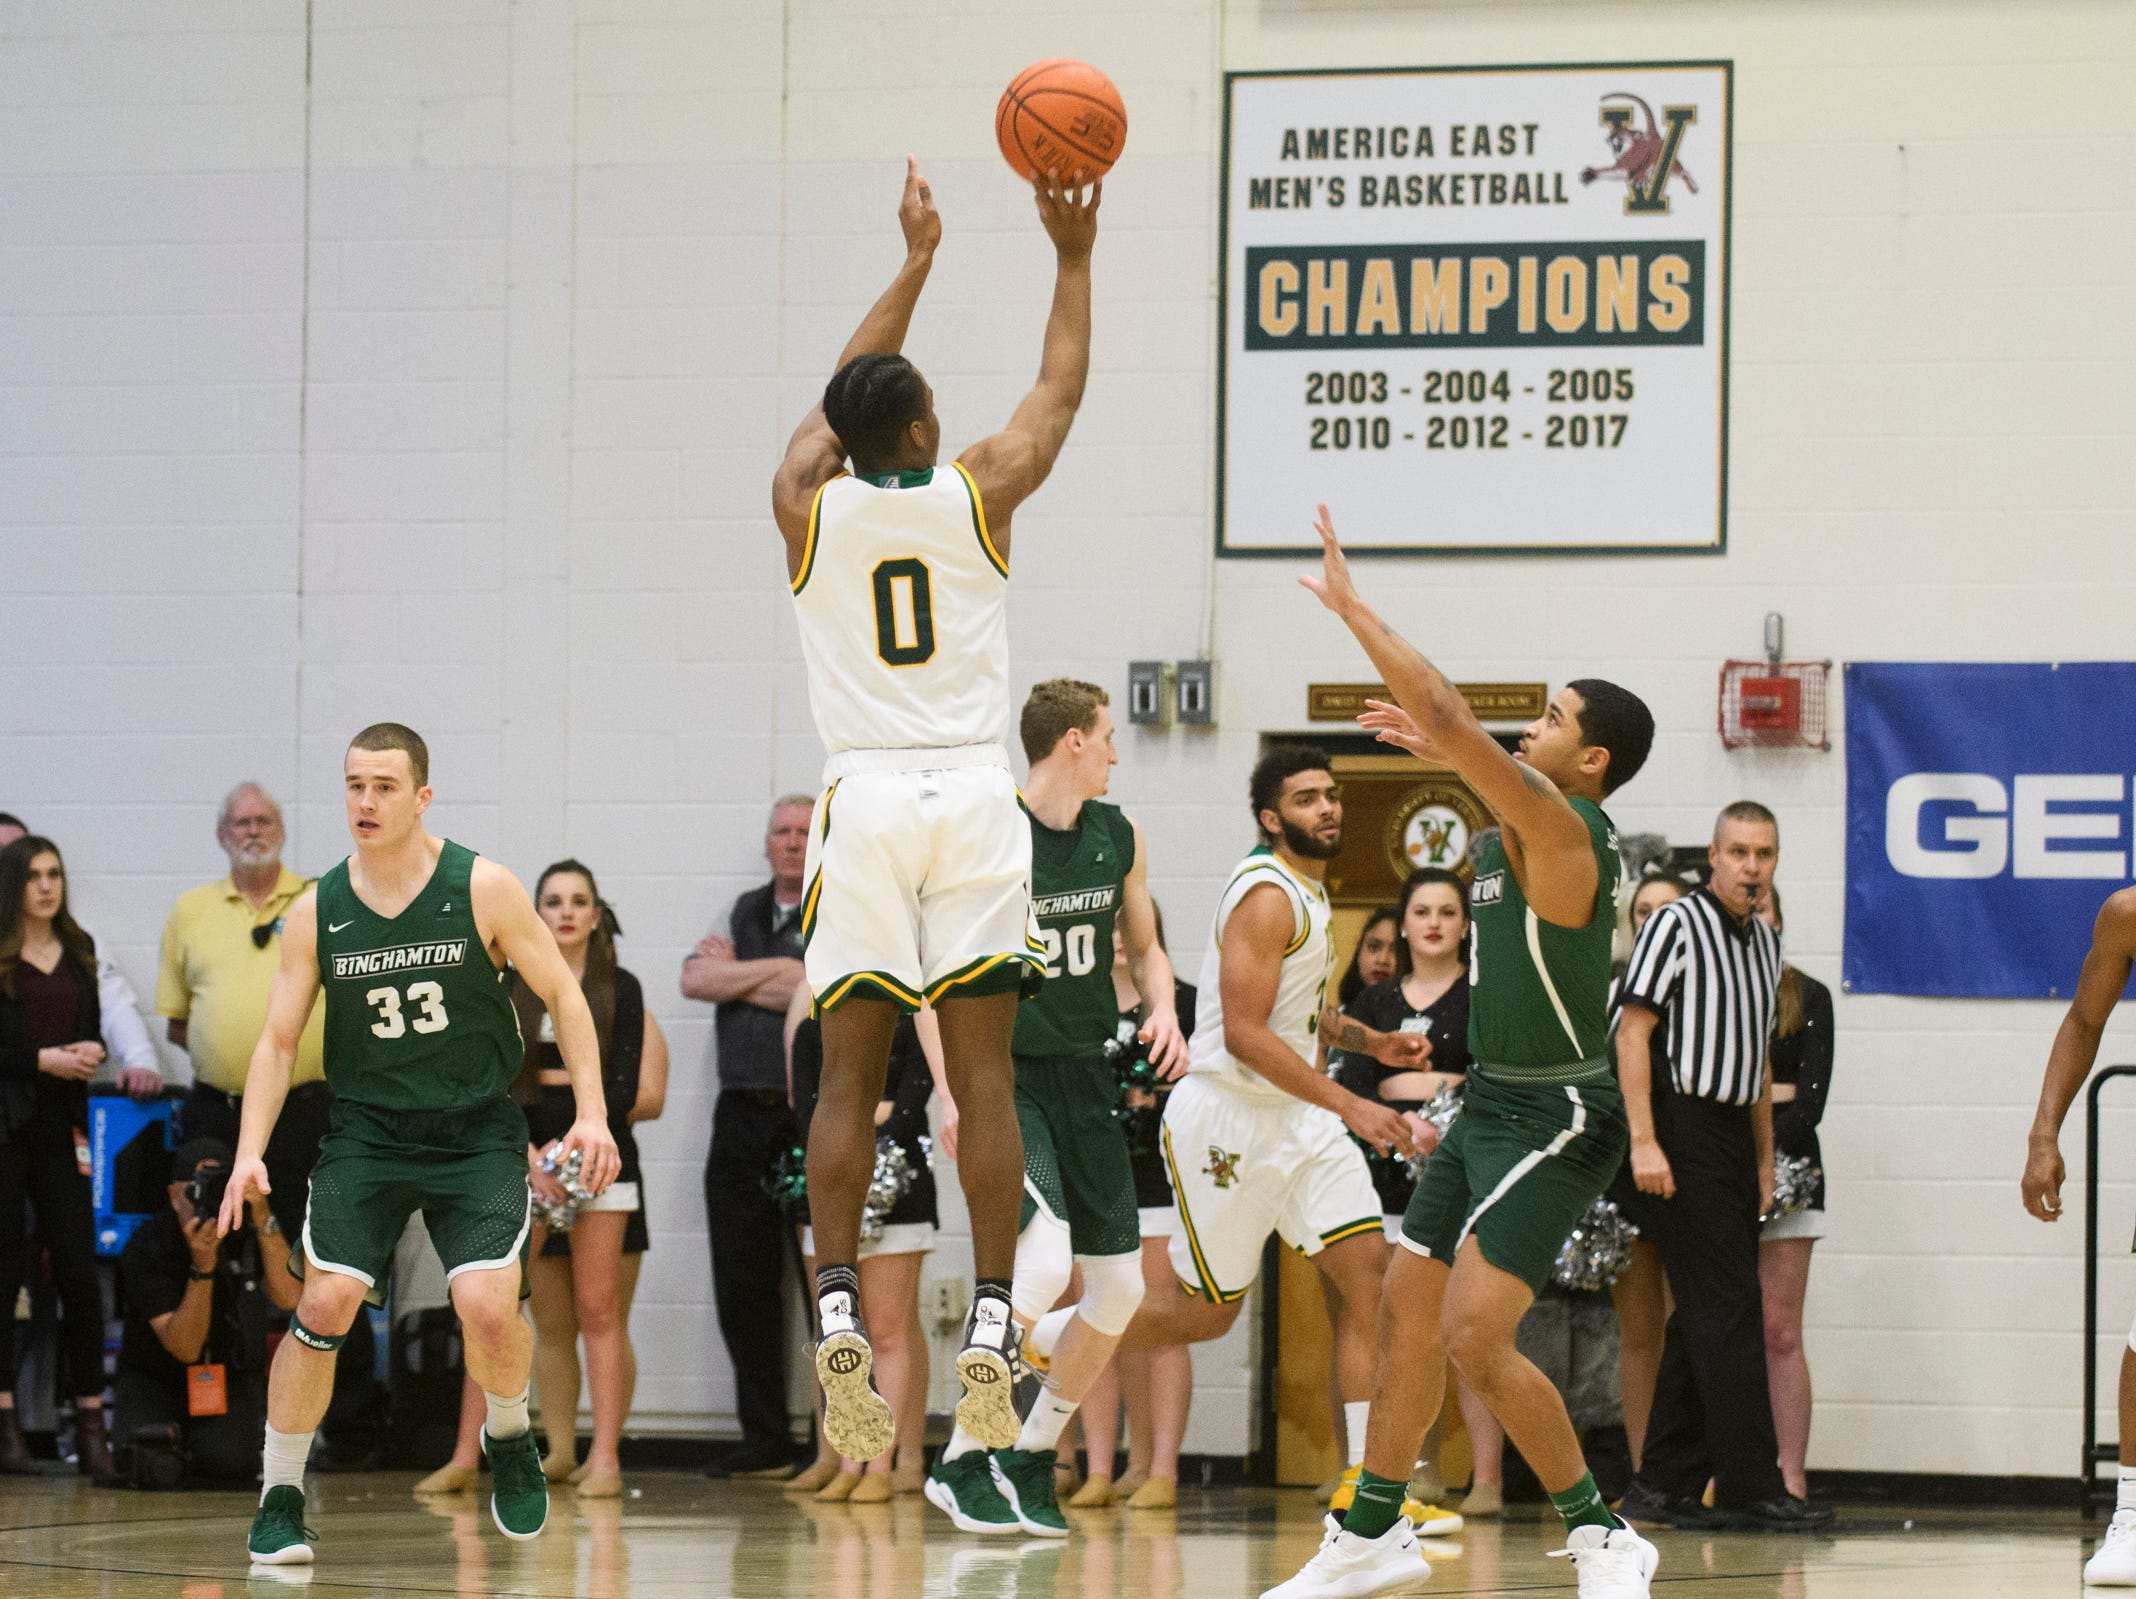 Vermont guard Stef Smith (0) shoots a three pointer during the America East semifinal game between the Binghamton Bearcats and the Vermont Catamounts at Patrick Gym on Tuesday March 12, 2019 in Burlington, Vermont.